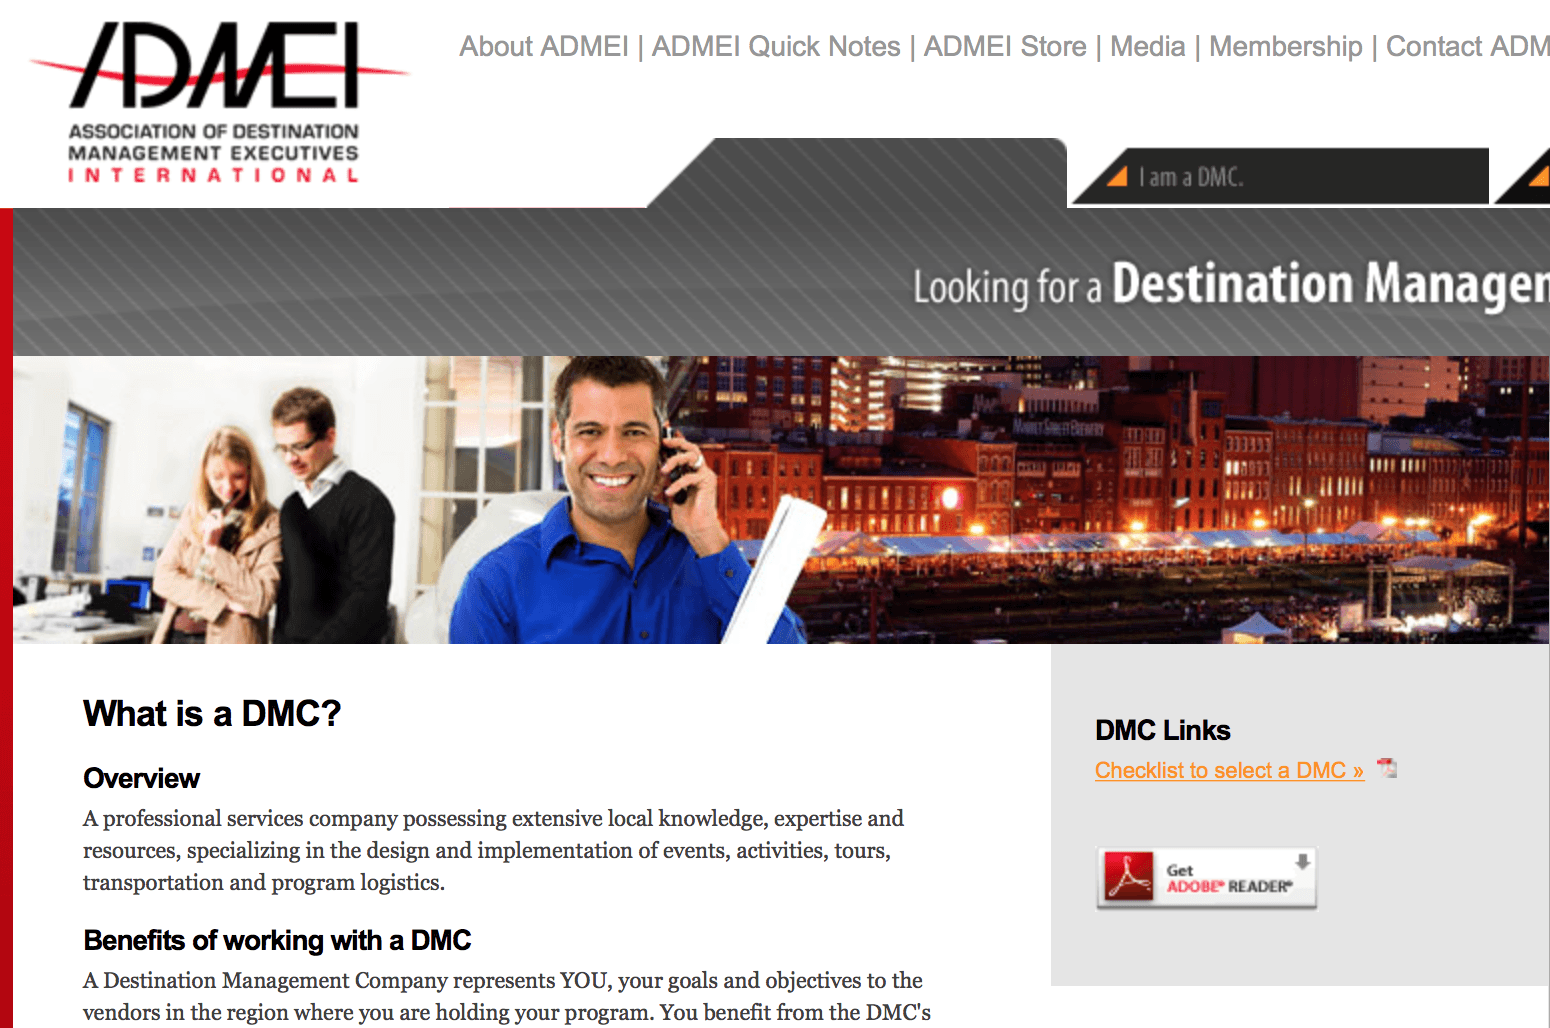 dmc desintation management company